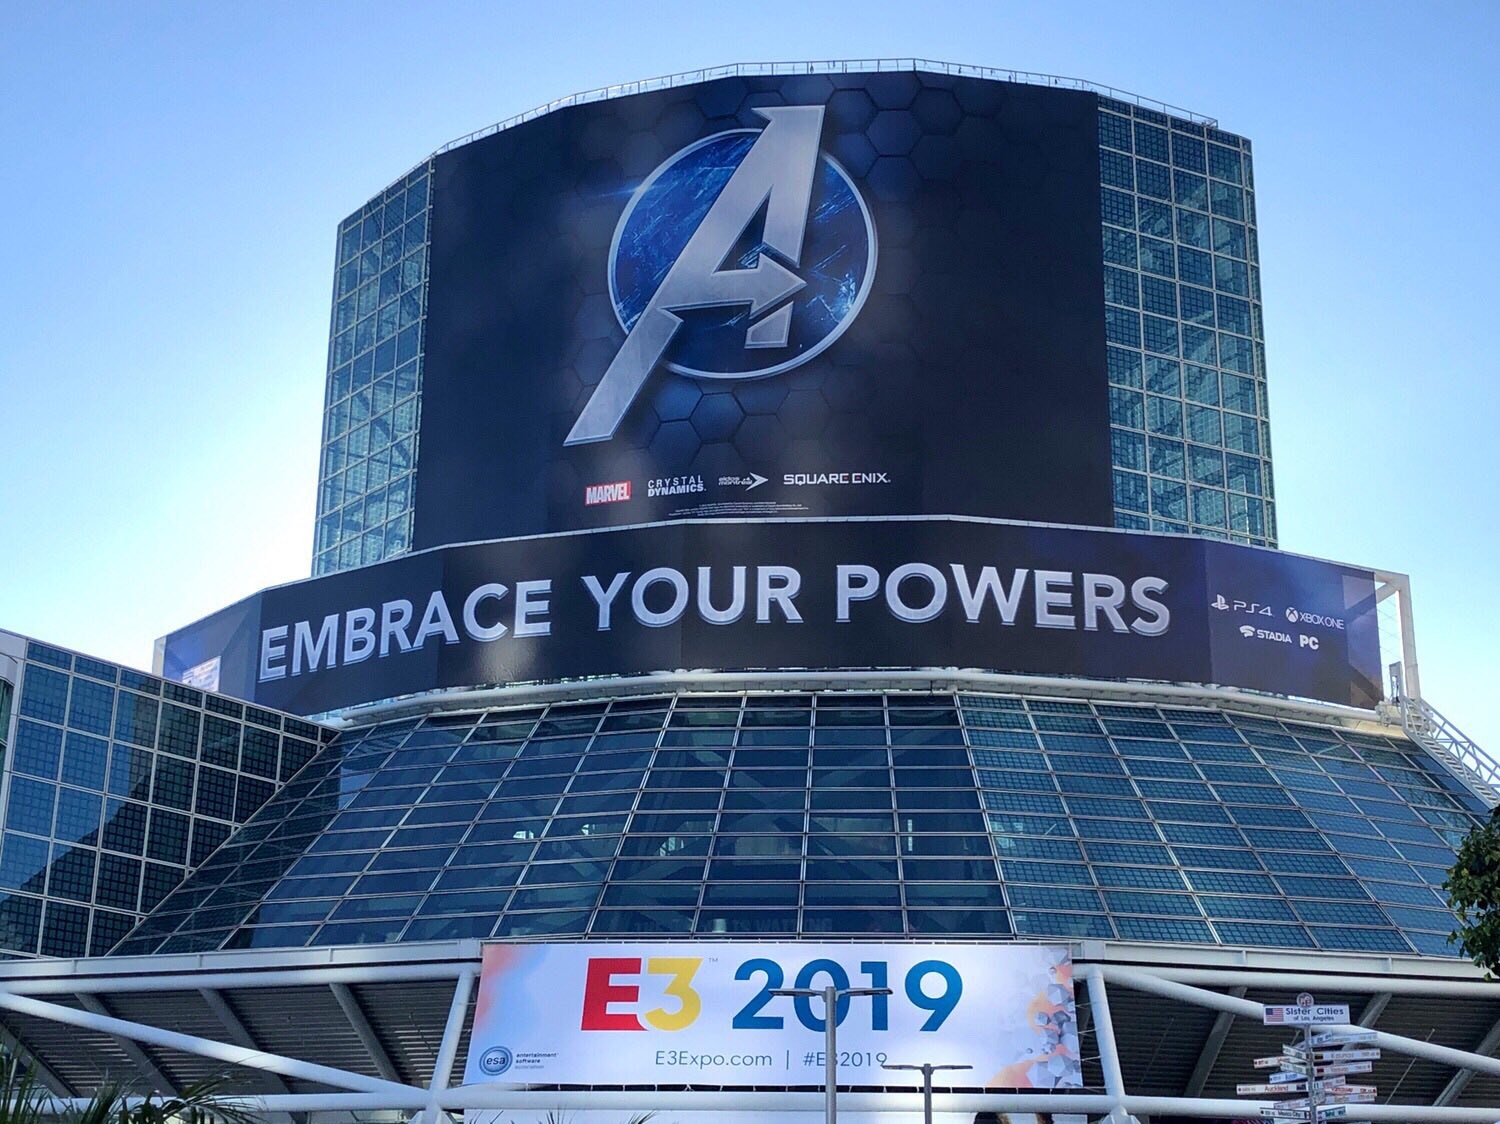 Marvel's Avengers game to be released for PS4, Xbox One, PC, and Stadia - Gematsu